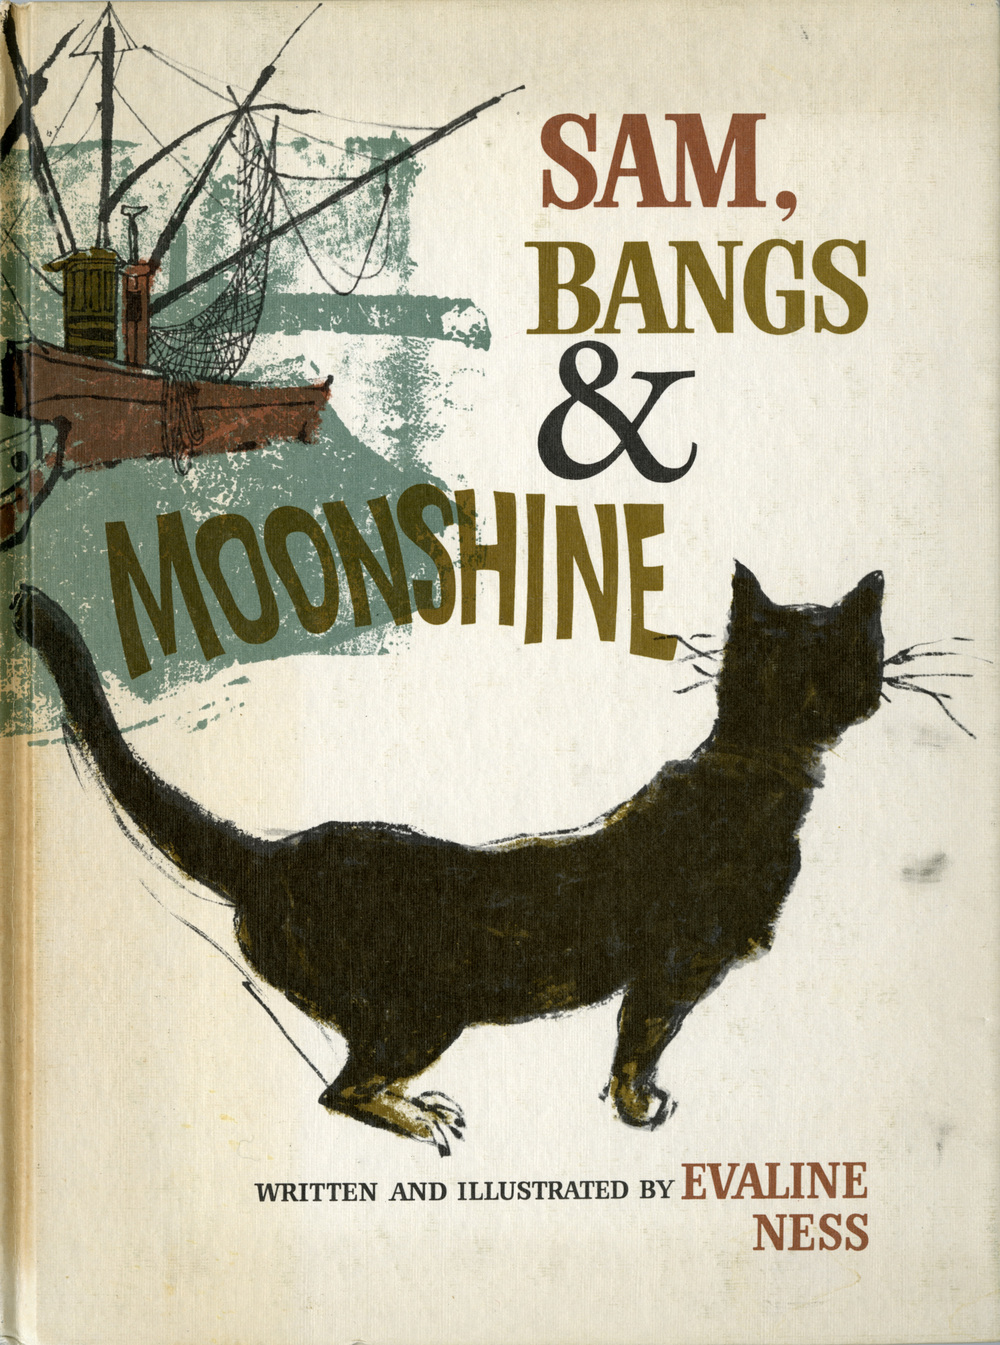 Evaline Ness, cover illustration for Sam, Bangs & Moonshine. After three consecutive years of runner-up-dom, earning Caldecott Honor status (1963-1965), Ness won the Caldecott Prize with this book in 1966.  Published by Holt, Rinehart and Winston, 1966.